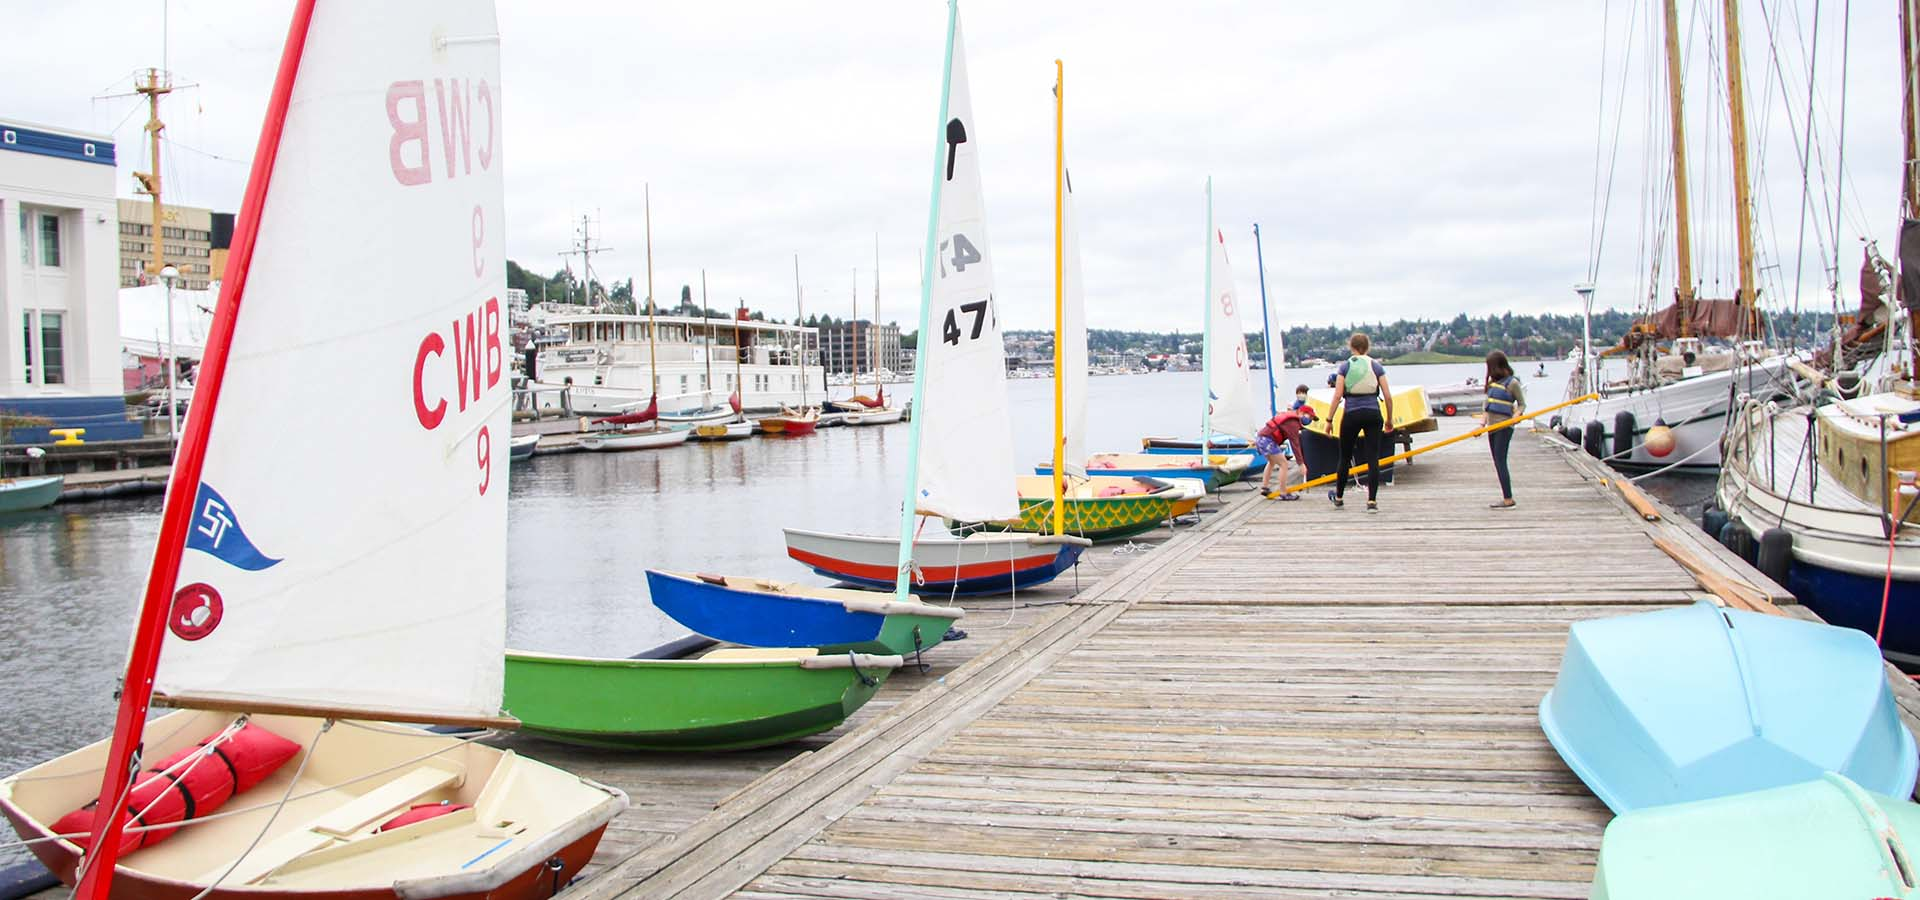 Row of small boats moored at a dock